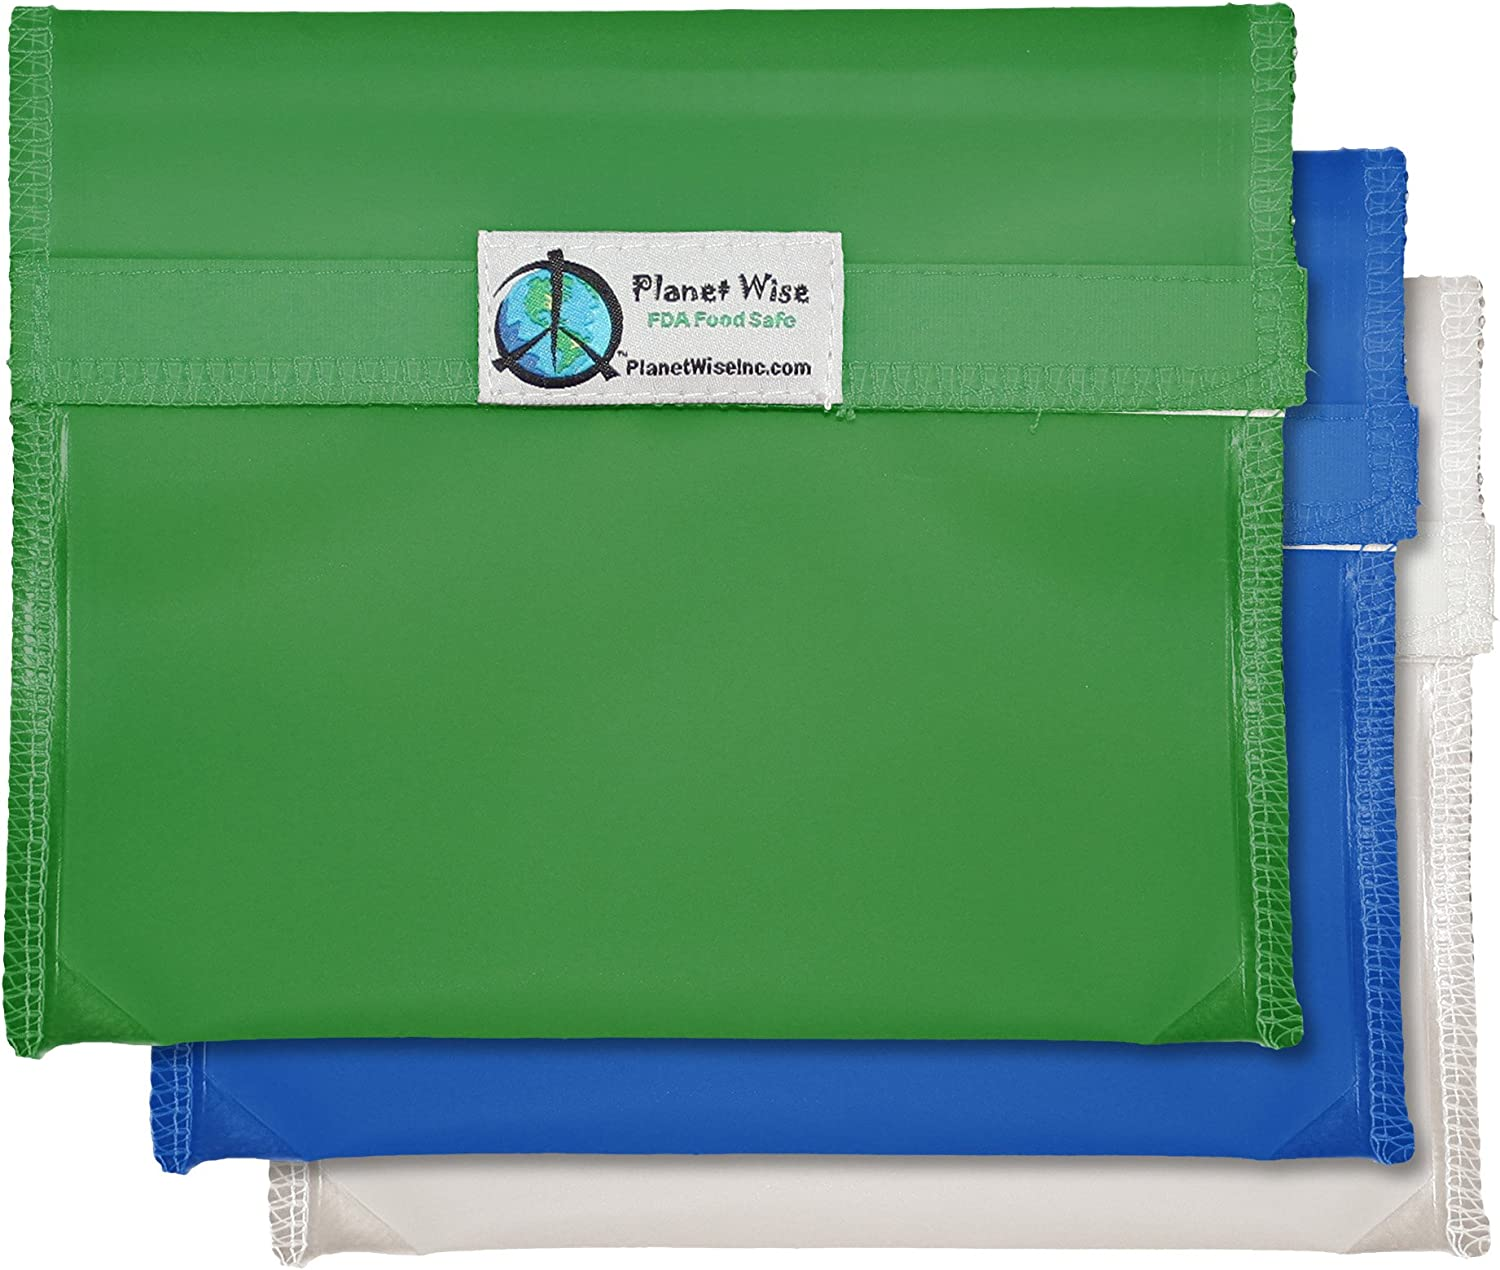 Planet Wise Reusable Tint Sandwich Bag - 3-Pack - Hook and Loop (Blue/Green)